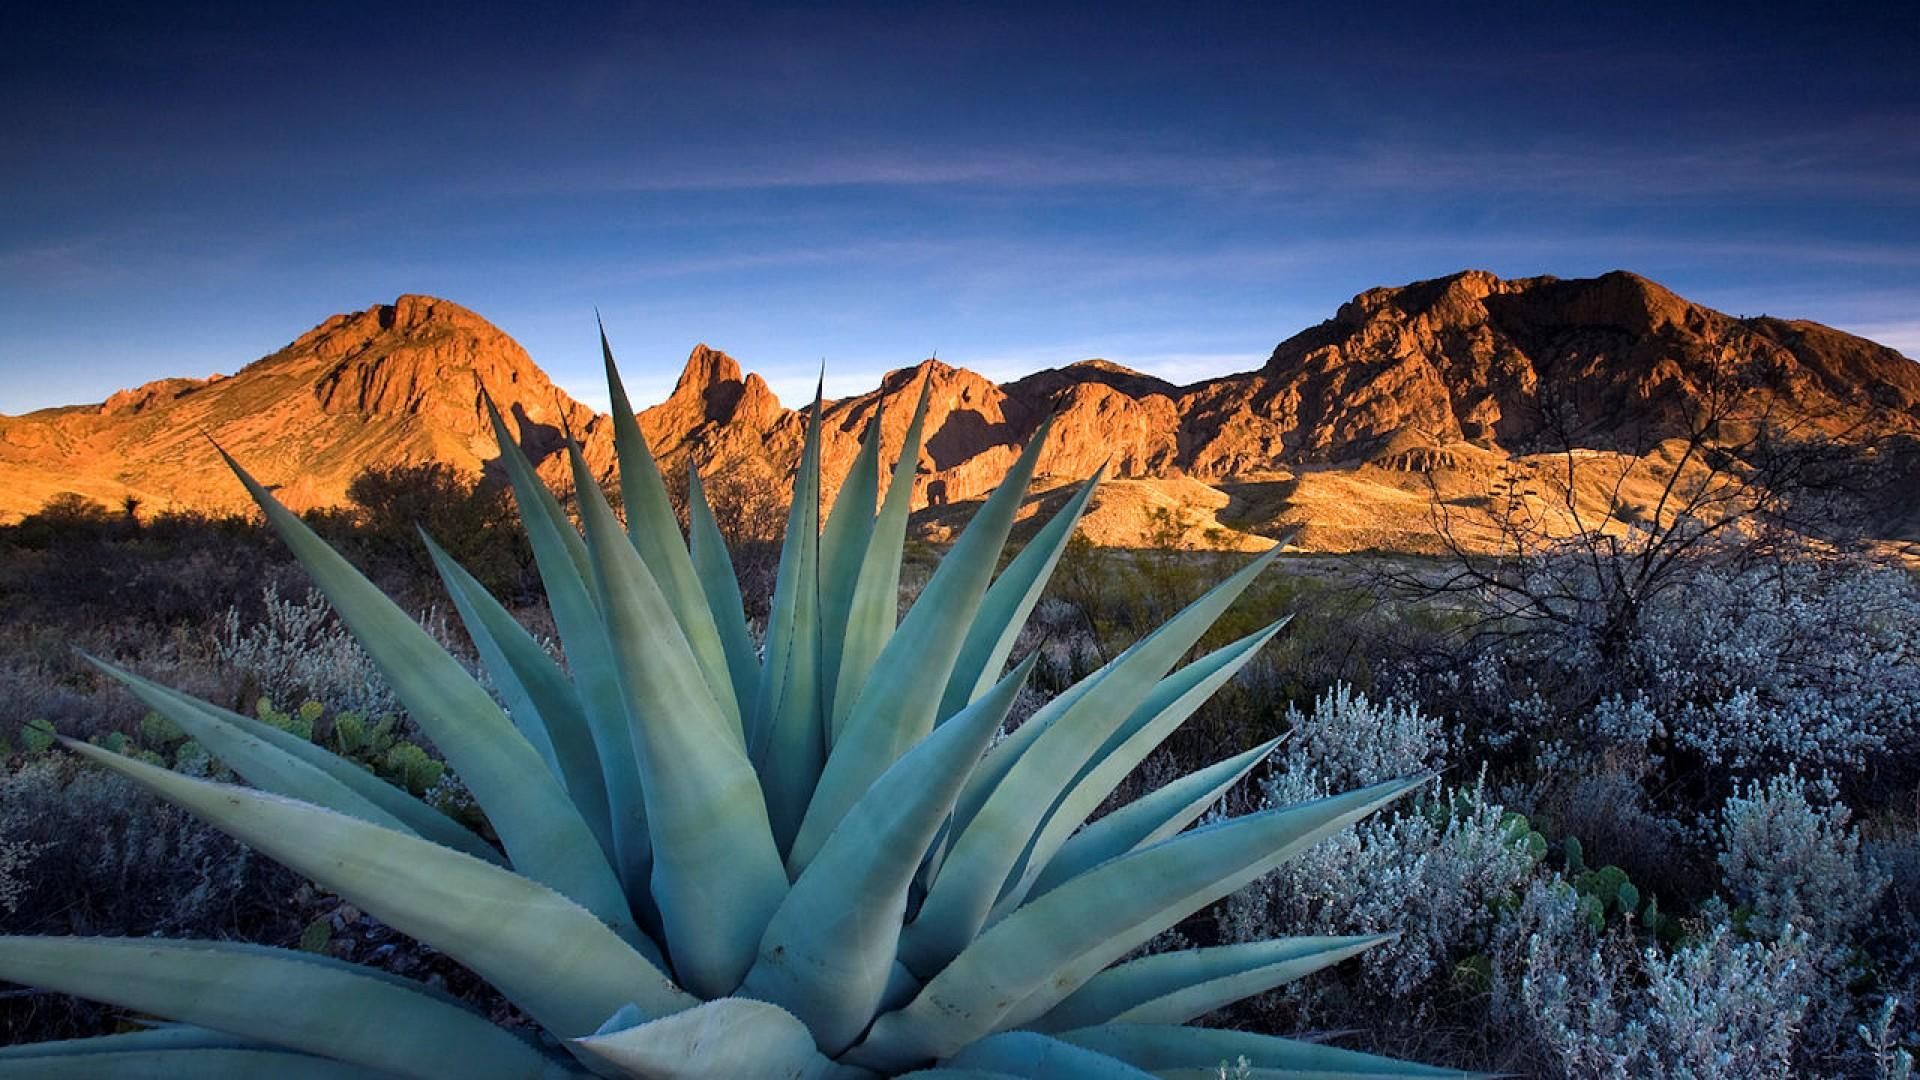 Cactus At Chisos Mountains Texas Wallpaper #24437 - Resolution 1920x1080 px